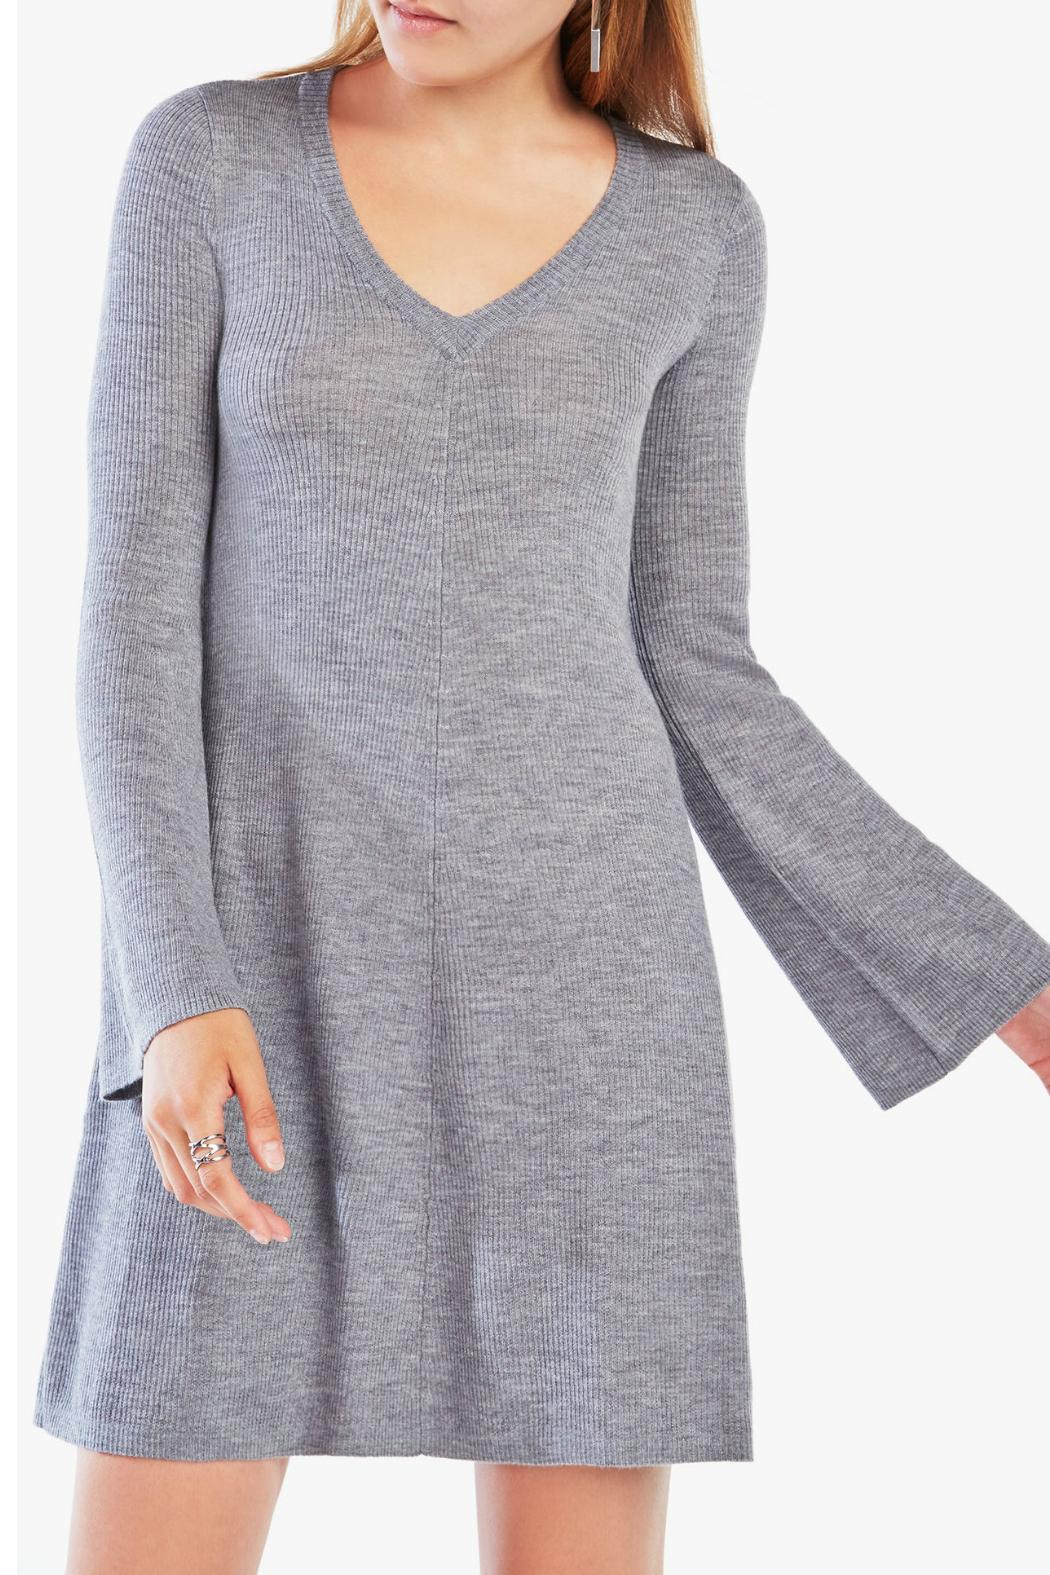 BCBG Max Azria Althea Sweater Dress - Front Full Image